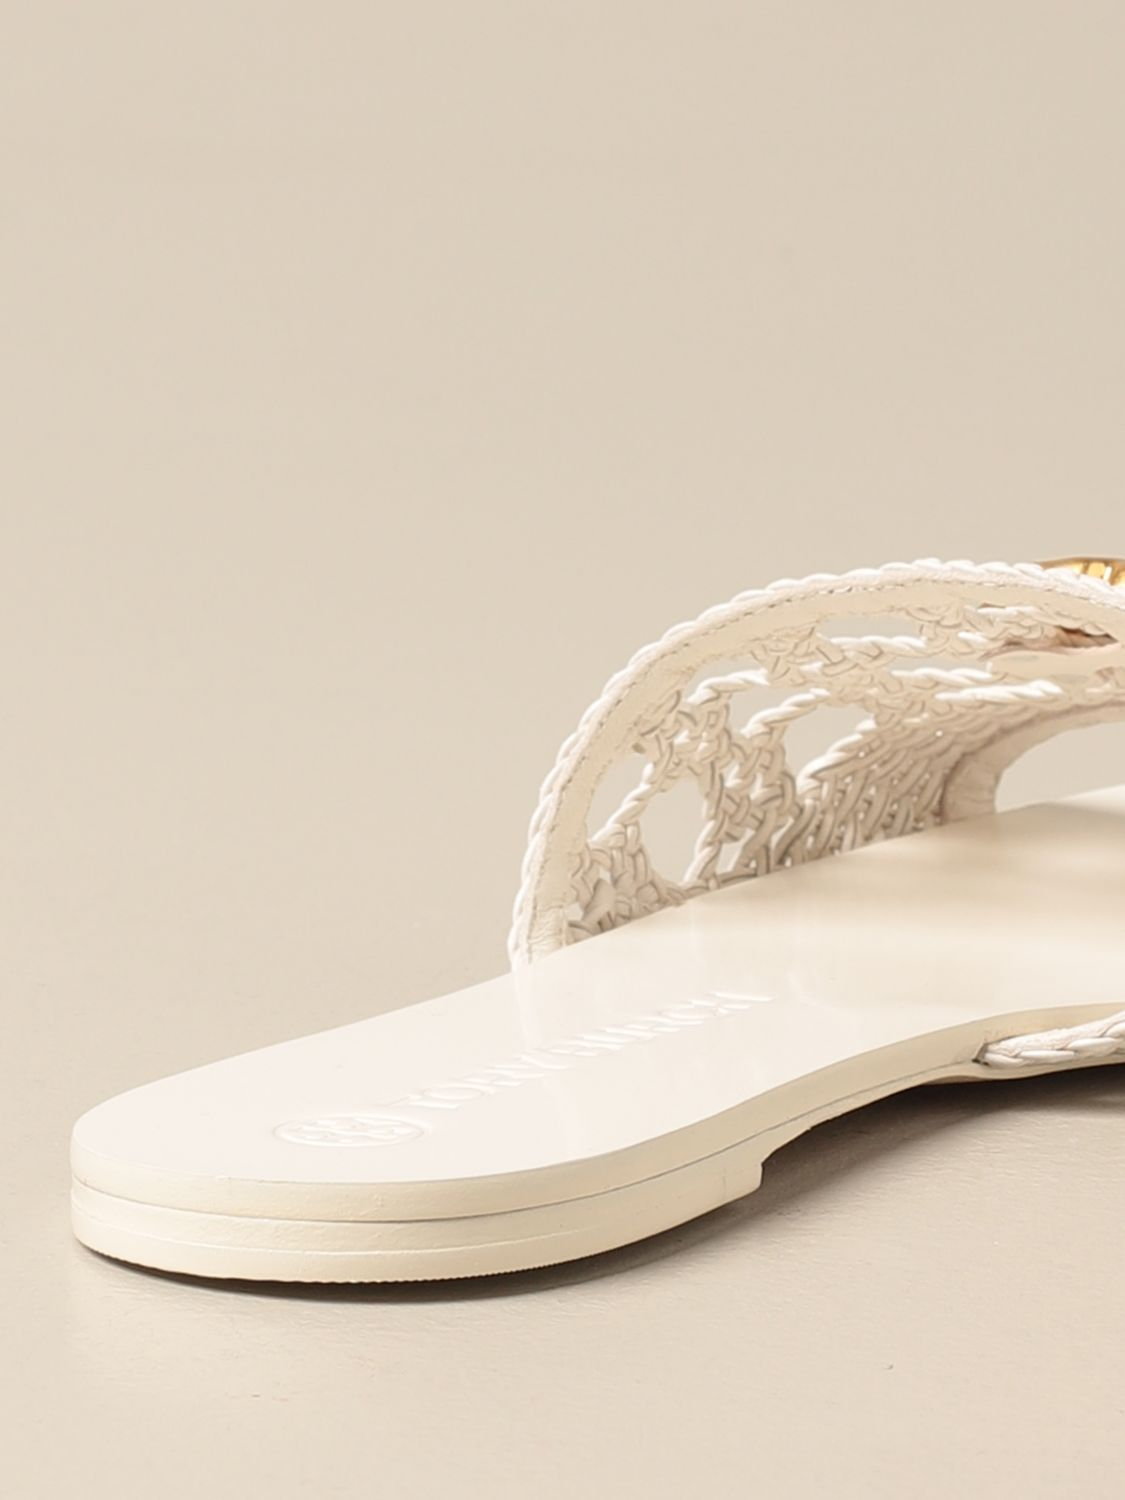 Flat sandals Tory Burch: Tory Burch sandals in woven leather with logo ivory 3